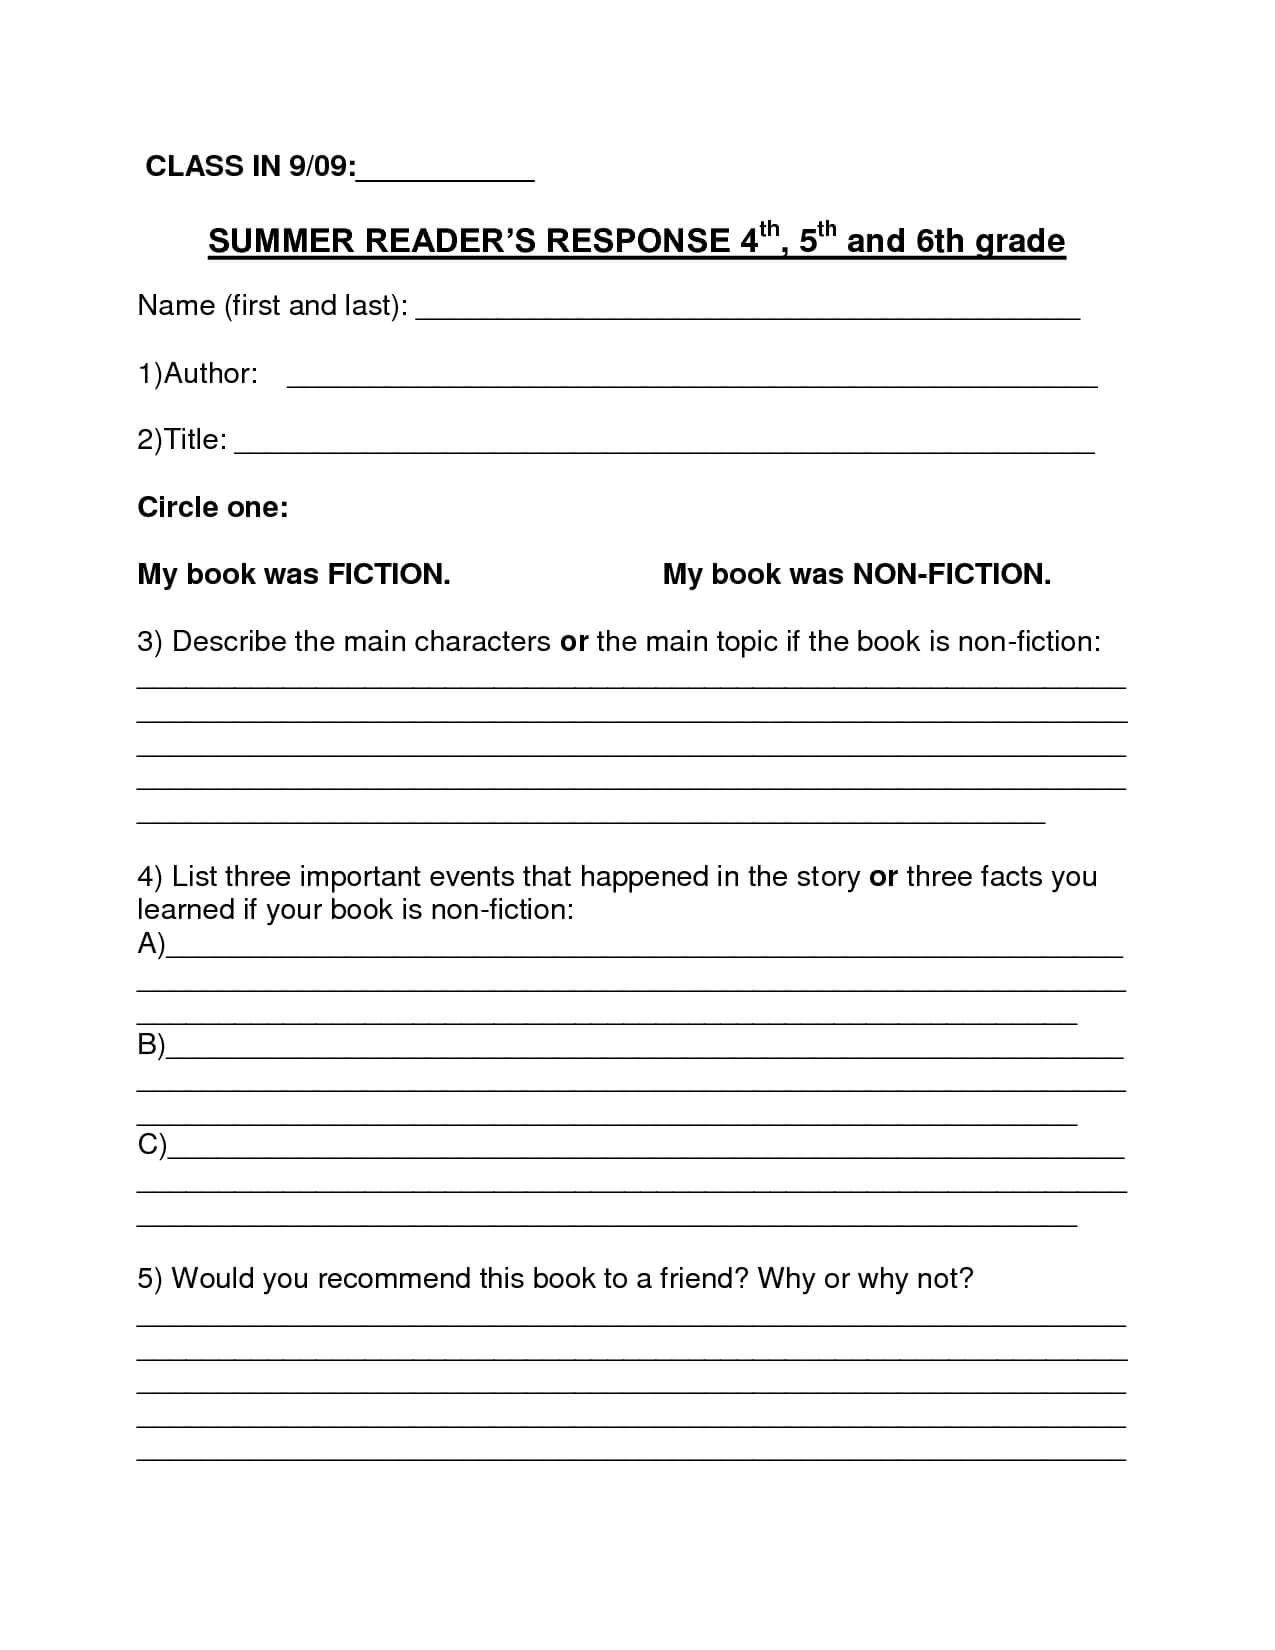 Book Report Template | Summer Book Report 4Th  6Th Grade With 4Th Grade Book Report Template